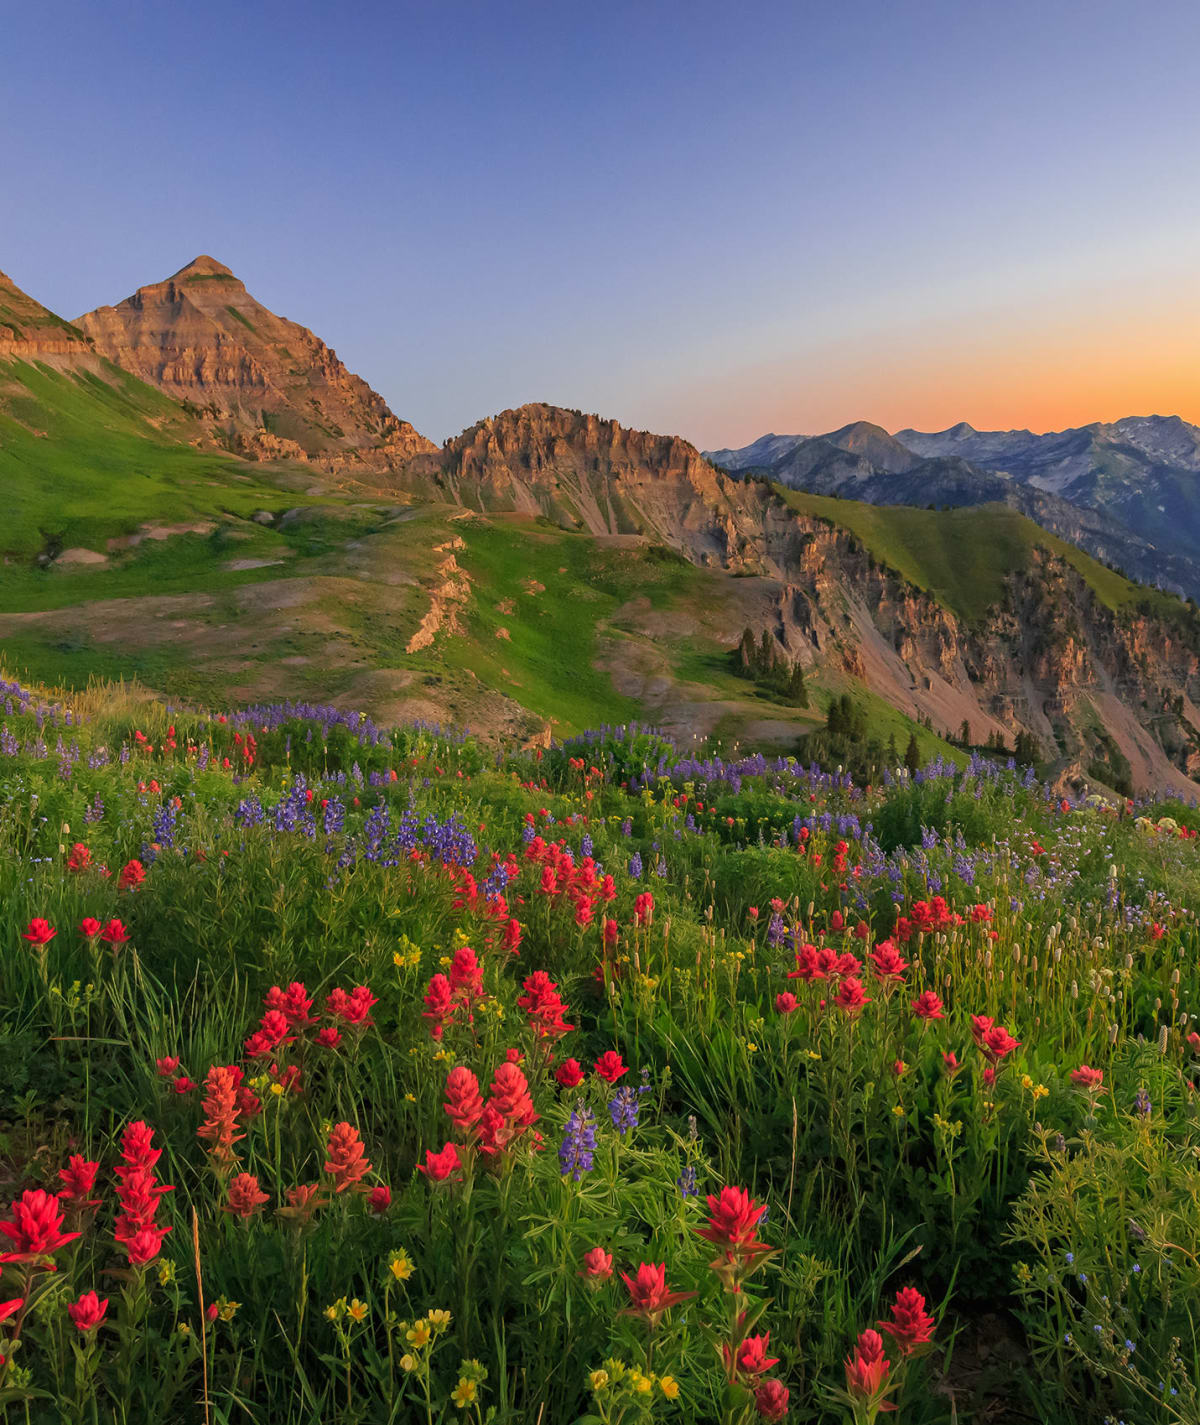 Wasatch Mountains near Alpine Meadows Apartments in Sandy, Utah